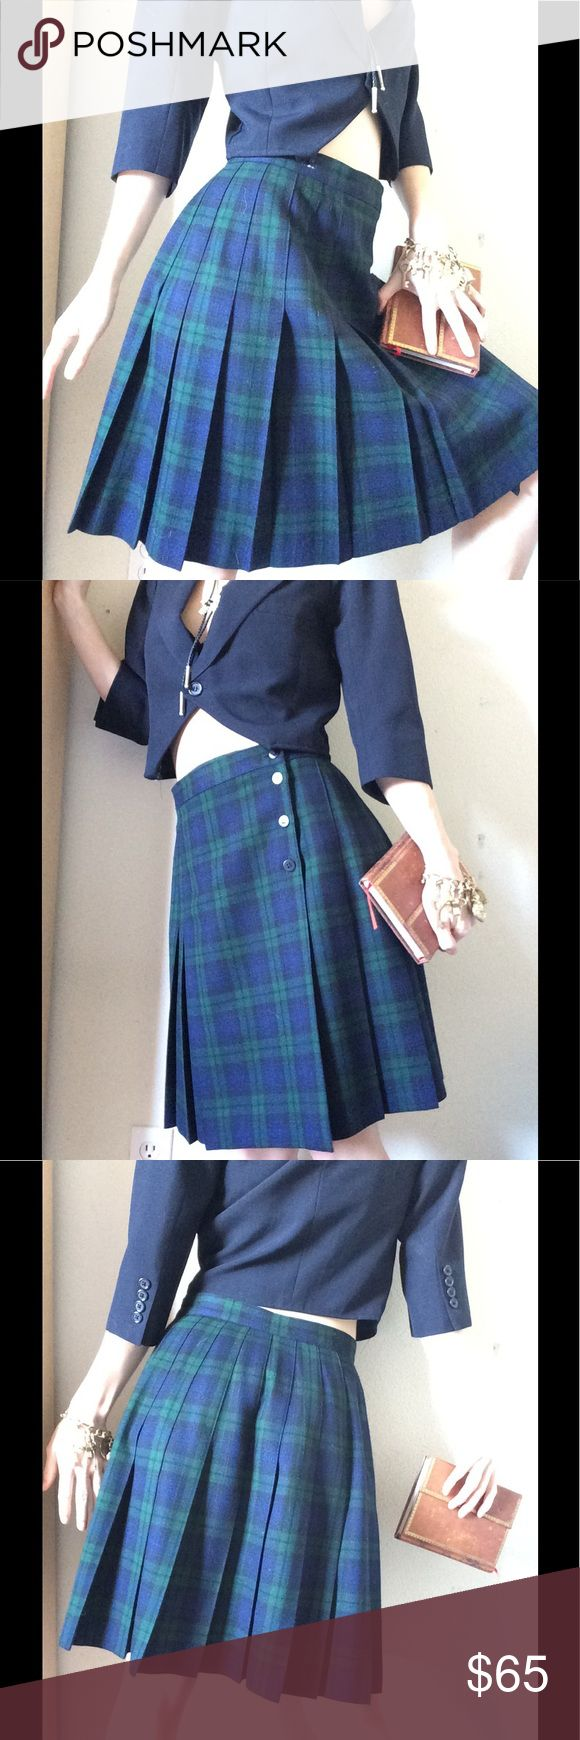 Perfect Score Plaid Schoolgirl Pleated Skirt High High waisted punk skirt with pleats. So amazing. Excellent condition. Smoke-free home. 100% wool. Not itchy. Made in USA. I think the brand label says VGR. Wrap around yourself and button up the side. Preppy flirty and sexy. Original good girl uniform style. Green and navy blue. Cosplay. Dress up like Brittany Spears or a gothic queen. Label says size 8 measurements laying flat soon Vintage Skirts Mini